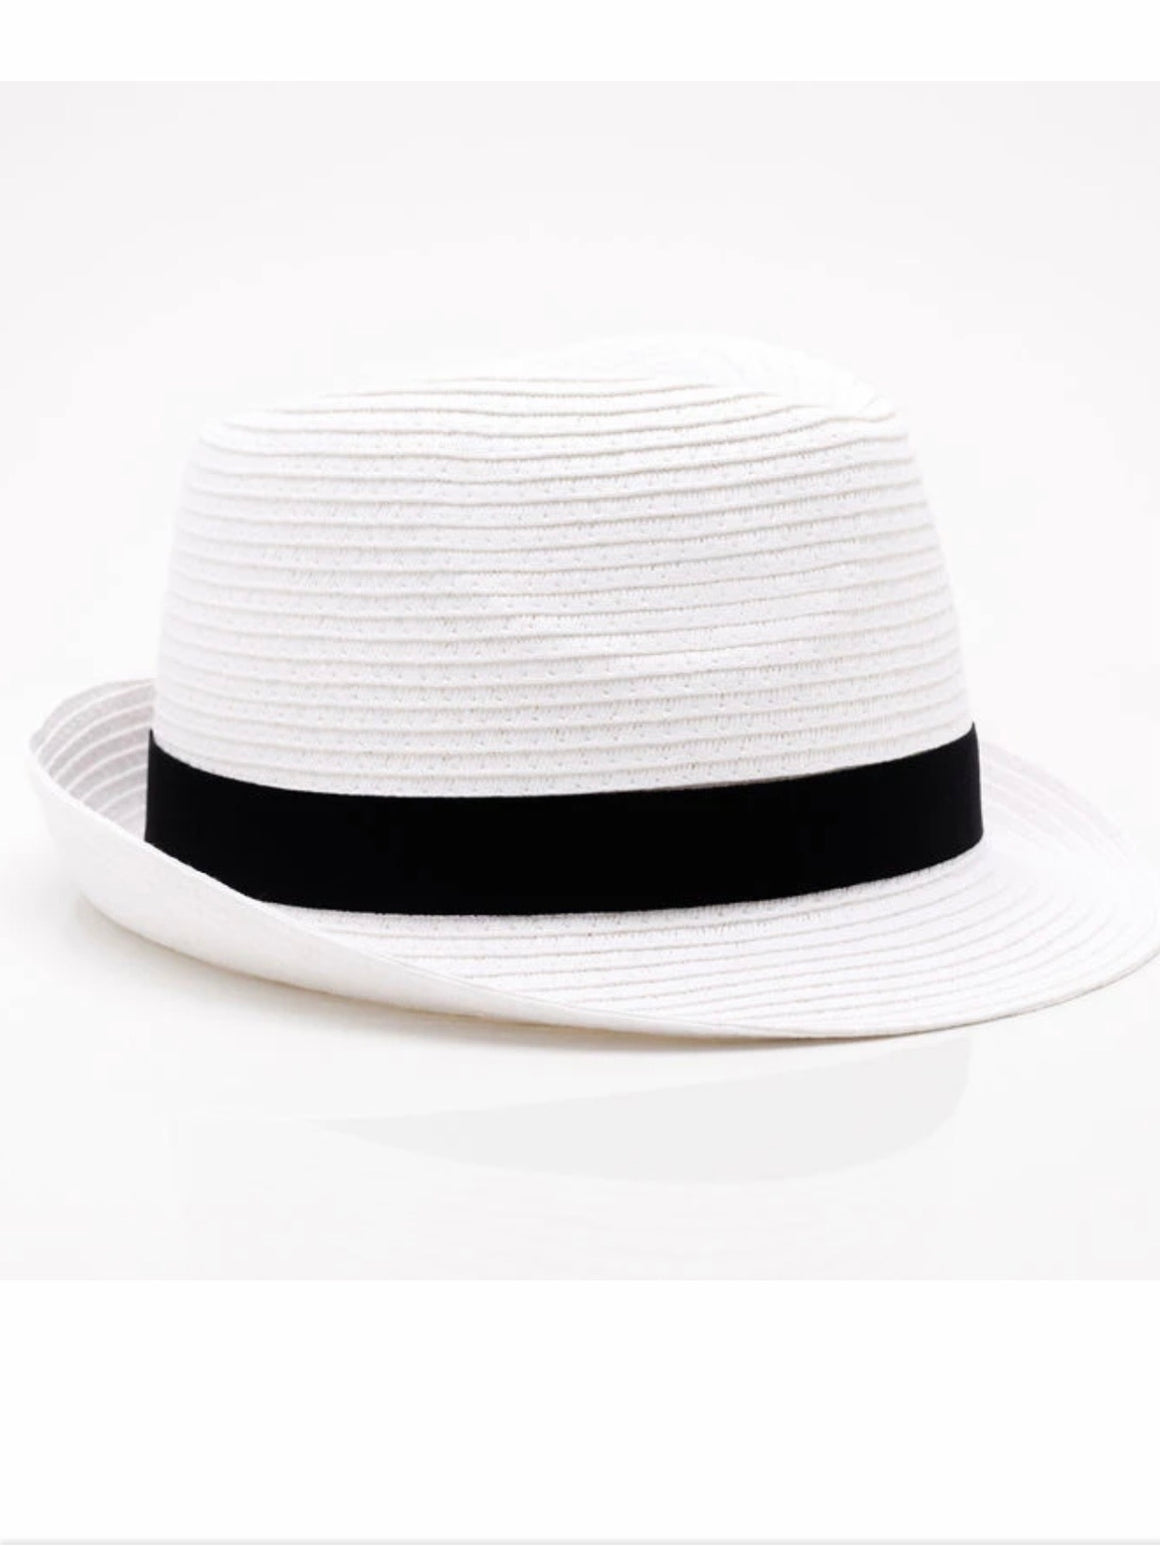 Home-Lee Fedora Hat-White with Black Trim - Trio Boutique Geraldine